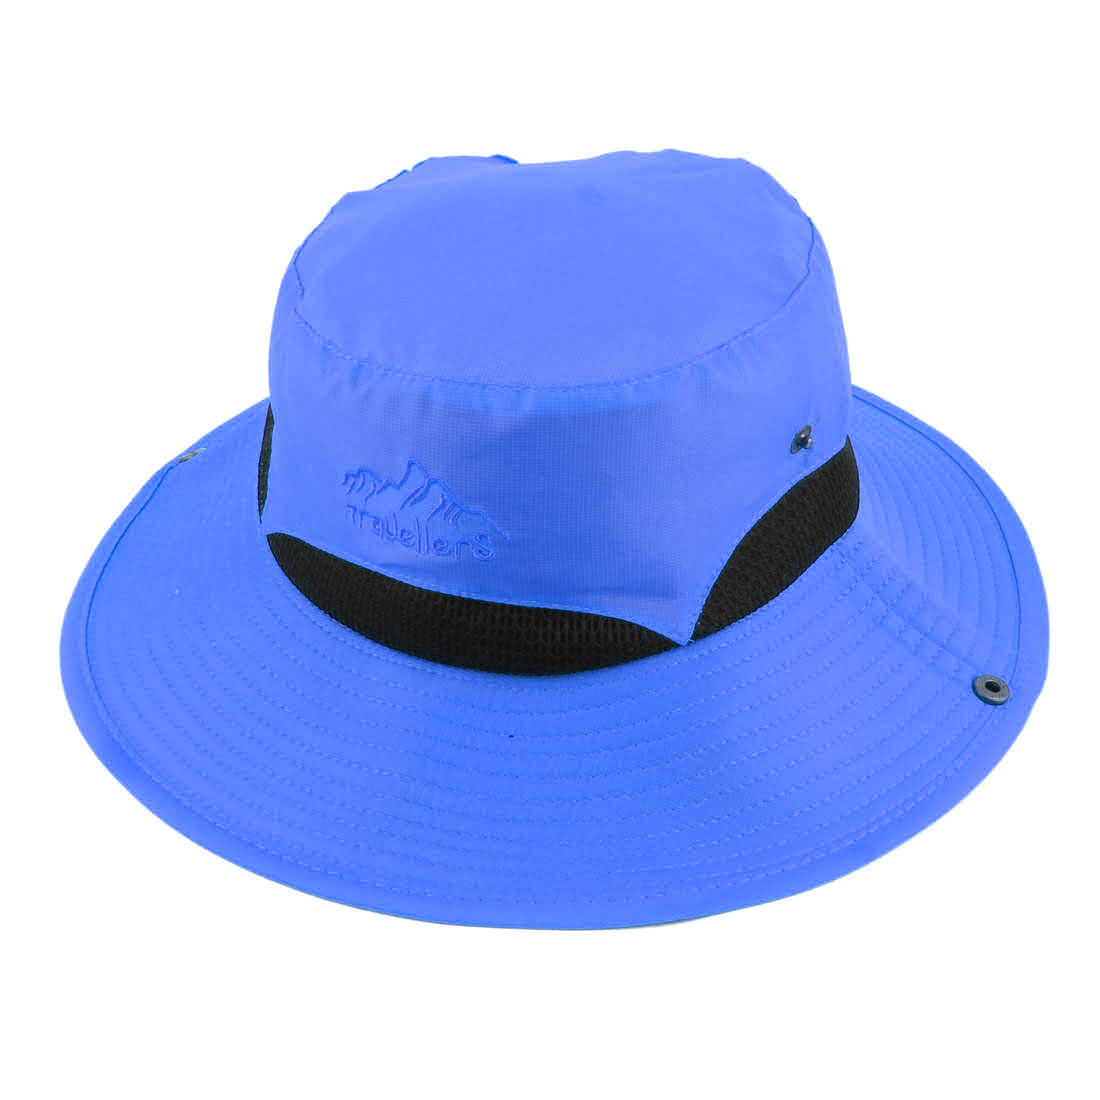 Ladies Women Polyester Foldable Head Decor Summer Protective Traveling Wide Brim Sun Cap Beach Fishing Hat Blue